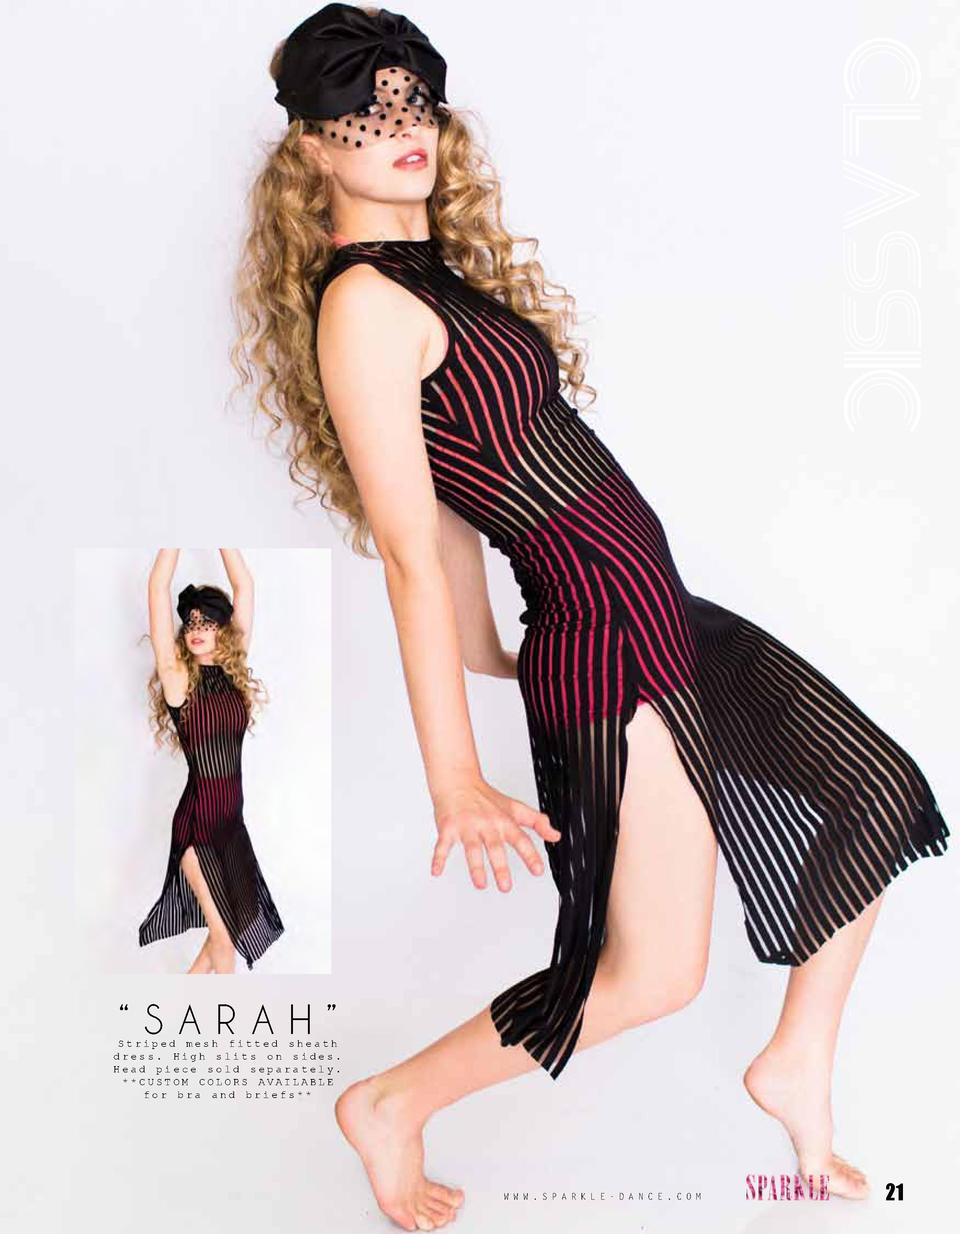 CLASSIC     SARAH     Striped mesh fitted sheath dress. High slits on sides. Head piece sold separately.   CUSTOM COLORS A...